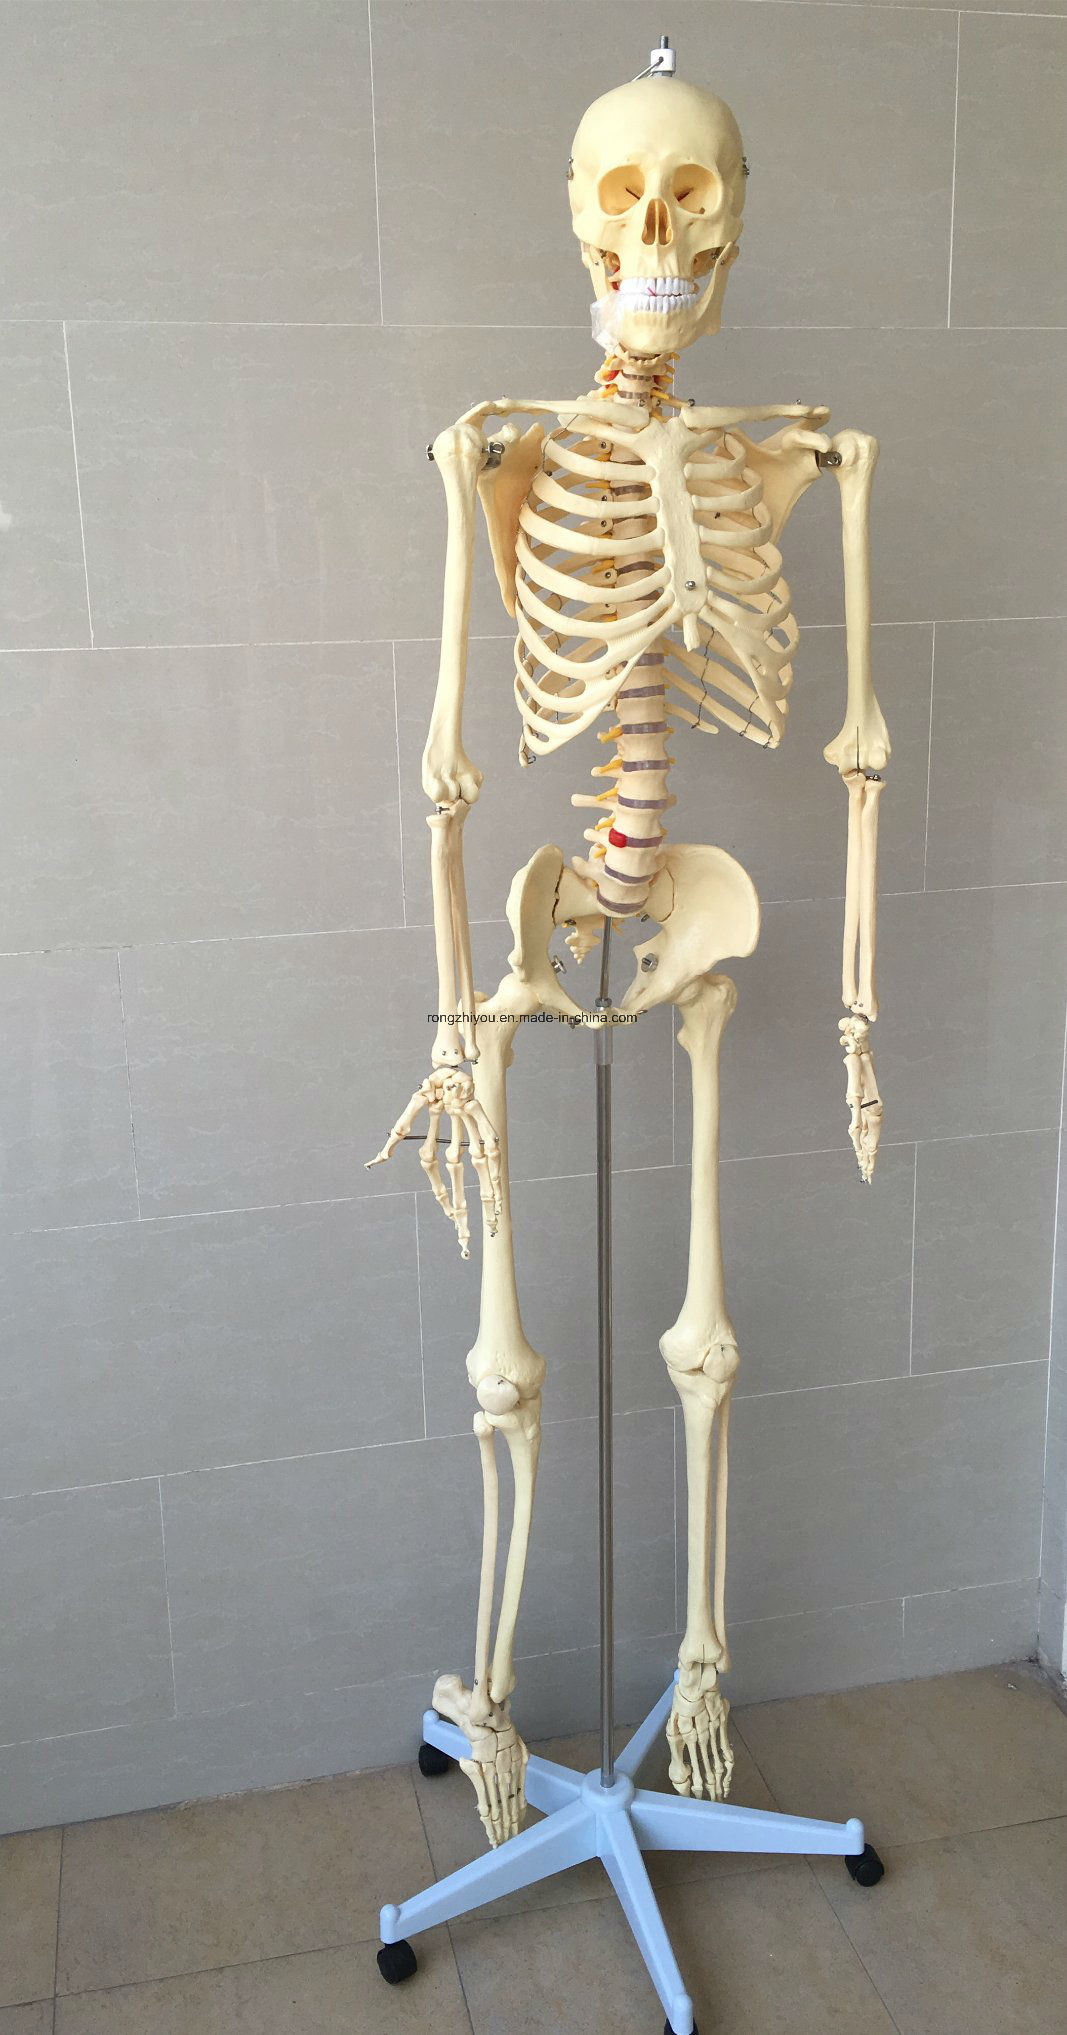 170cm Human Skeleton Medical Anatomy Model Sold by Rzy (R020102)